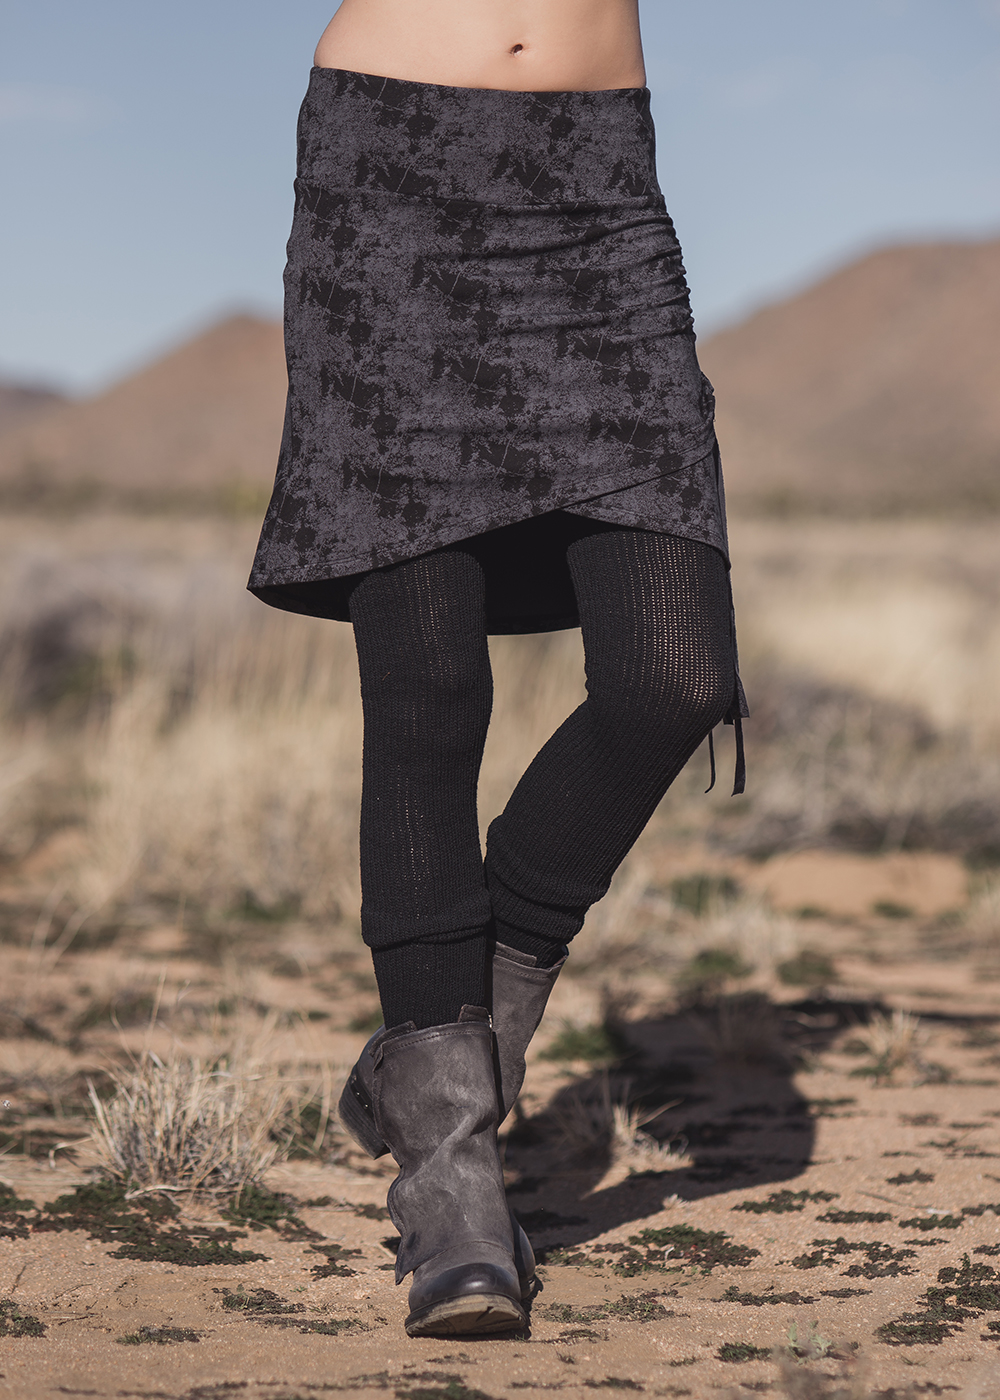 Stellar Skirt in Organic Cotton & Bamboo - Nomads Hemp Wear